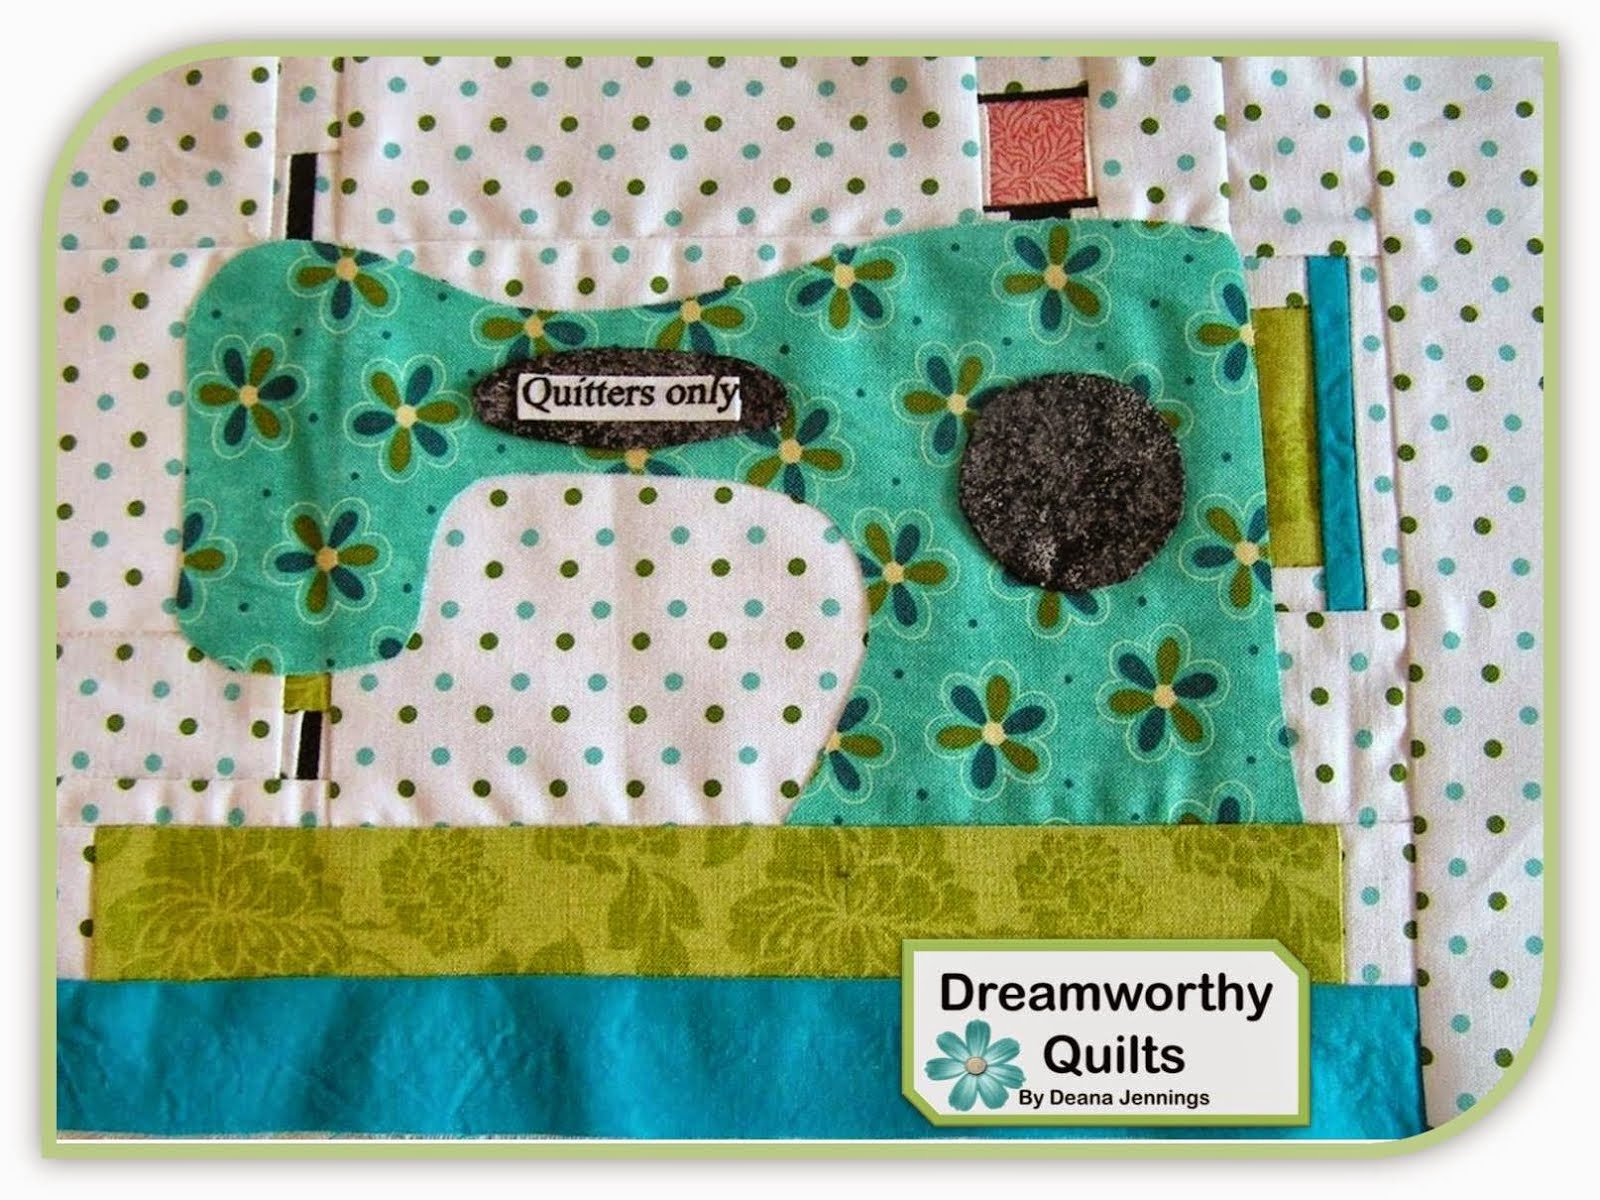 Buy Quilter's Garden at Etsy.